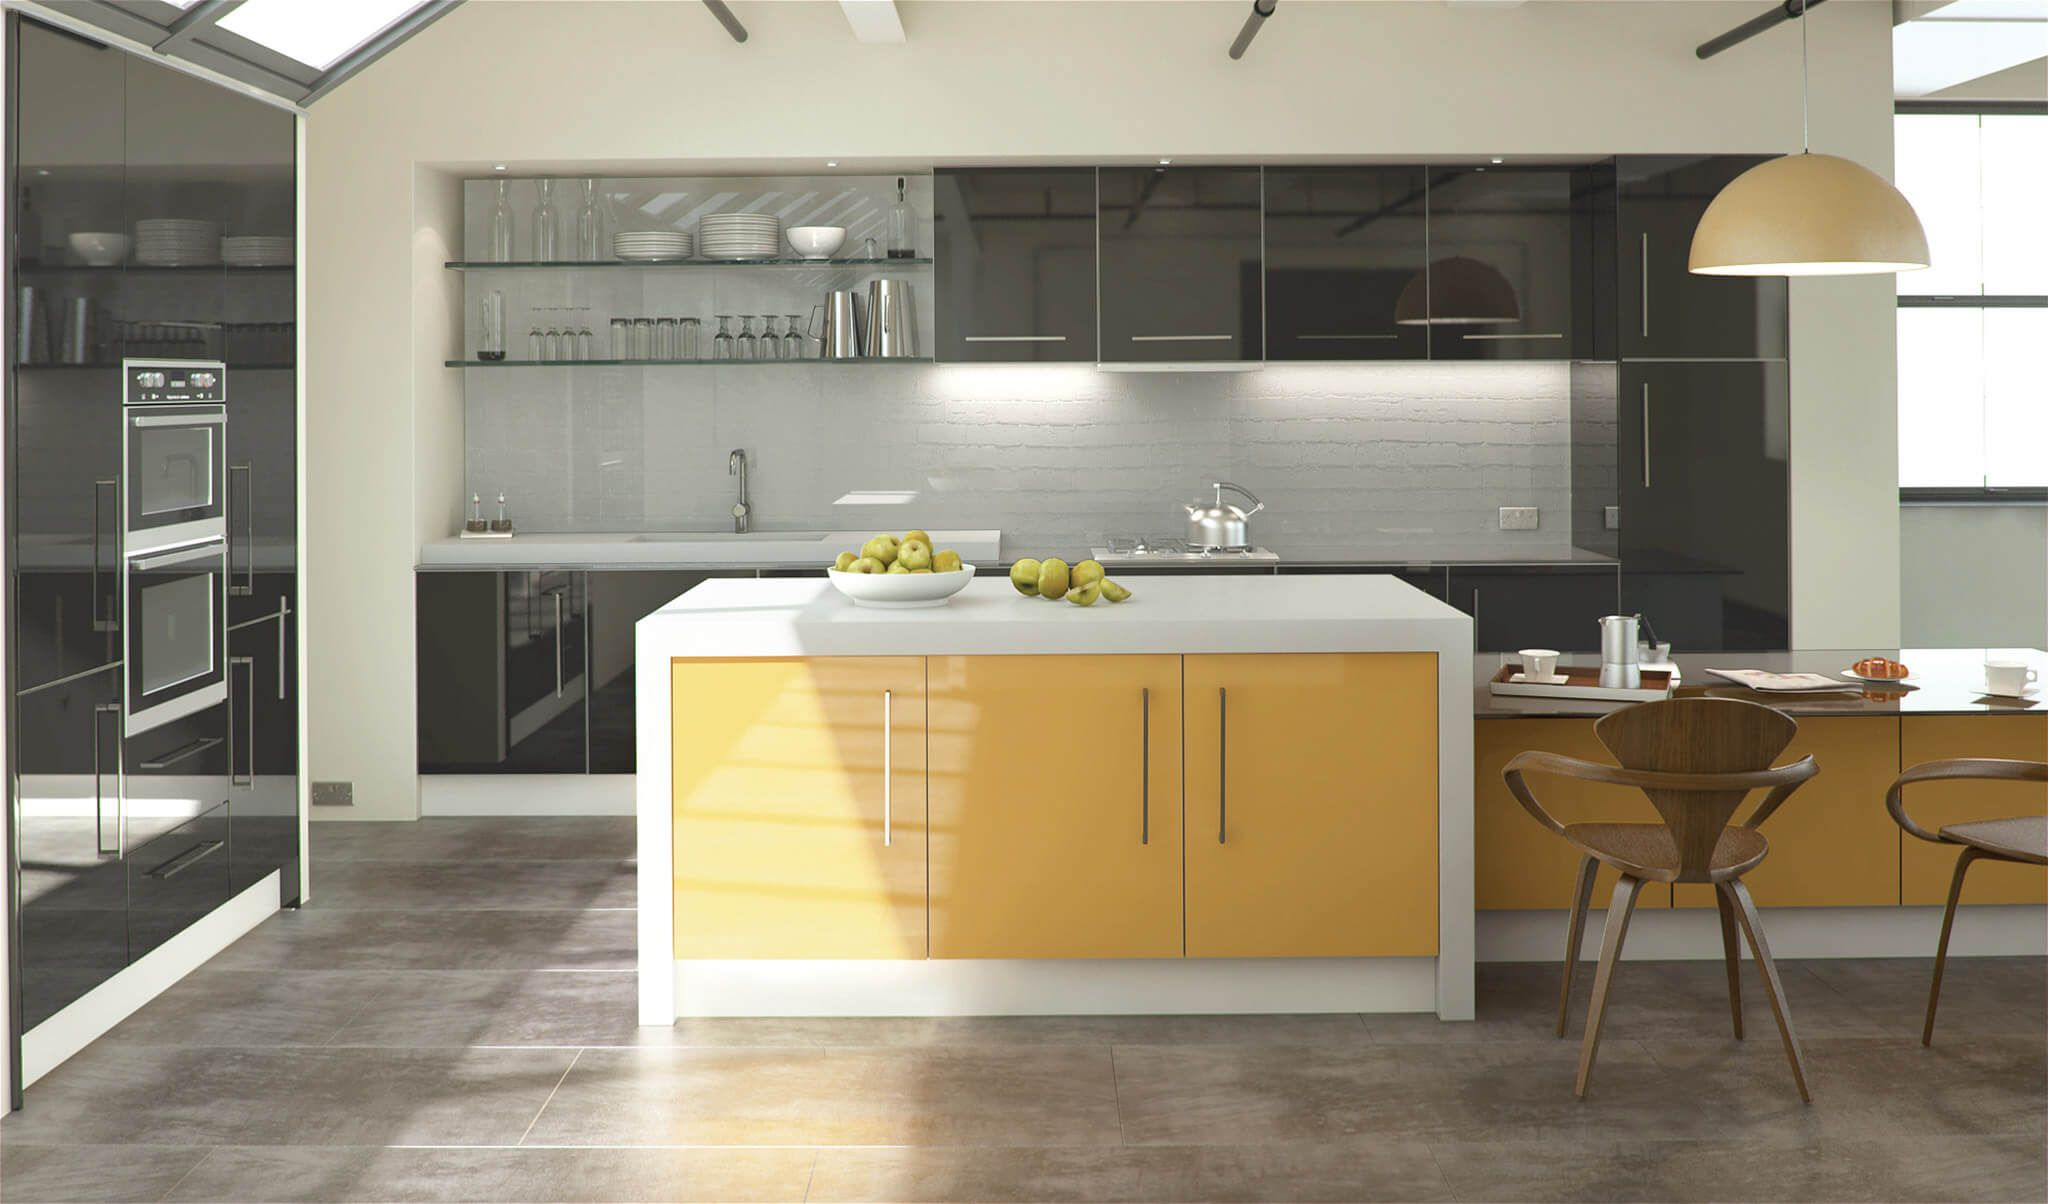 Acrylic Cabinet Doors in a High End Modern Kitchen